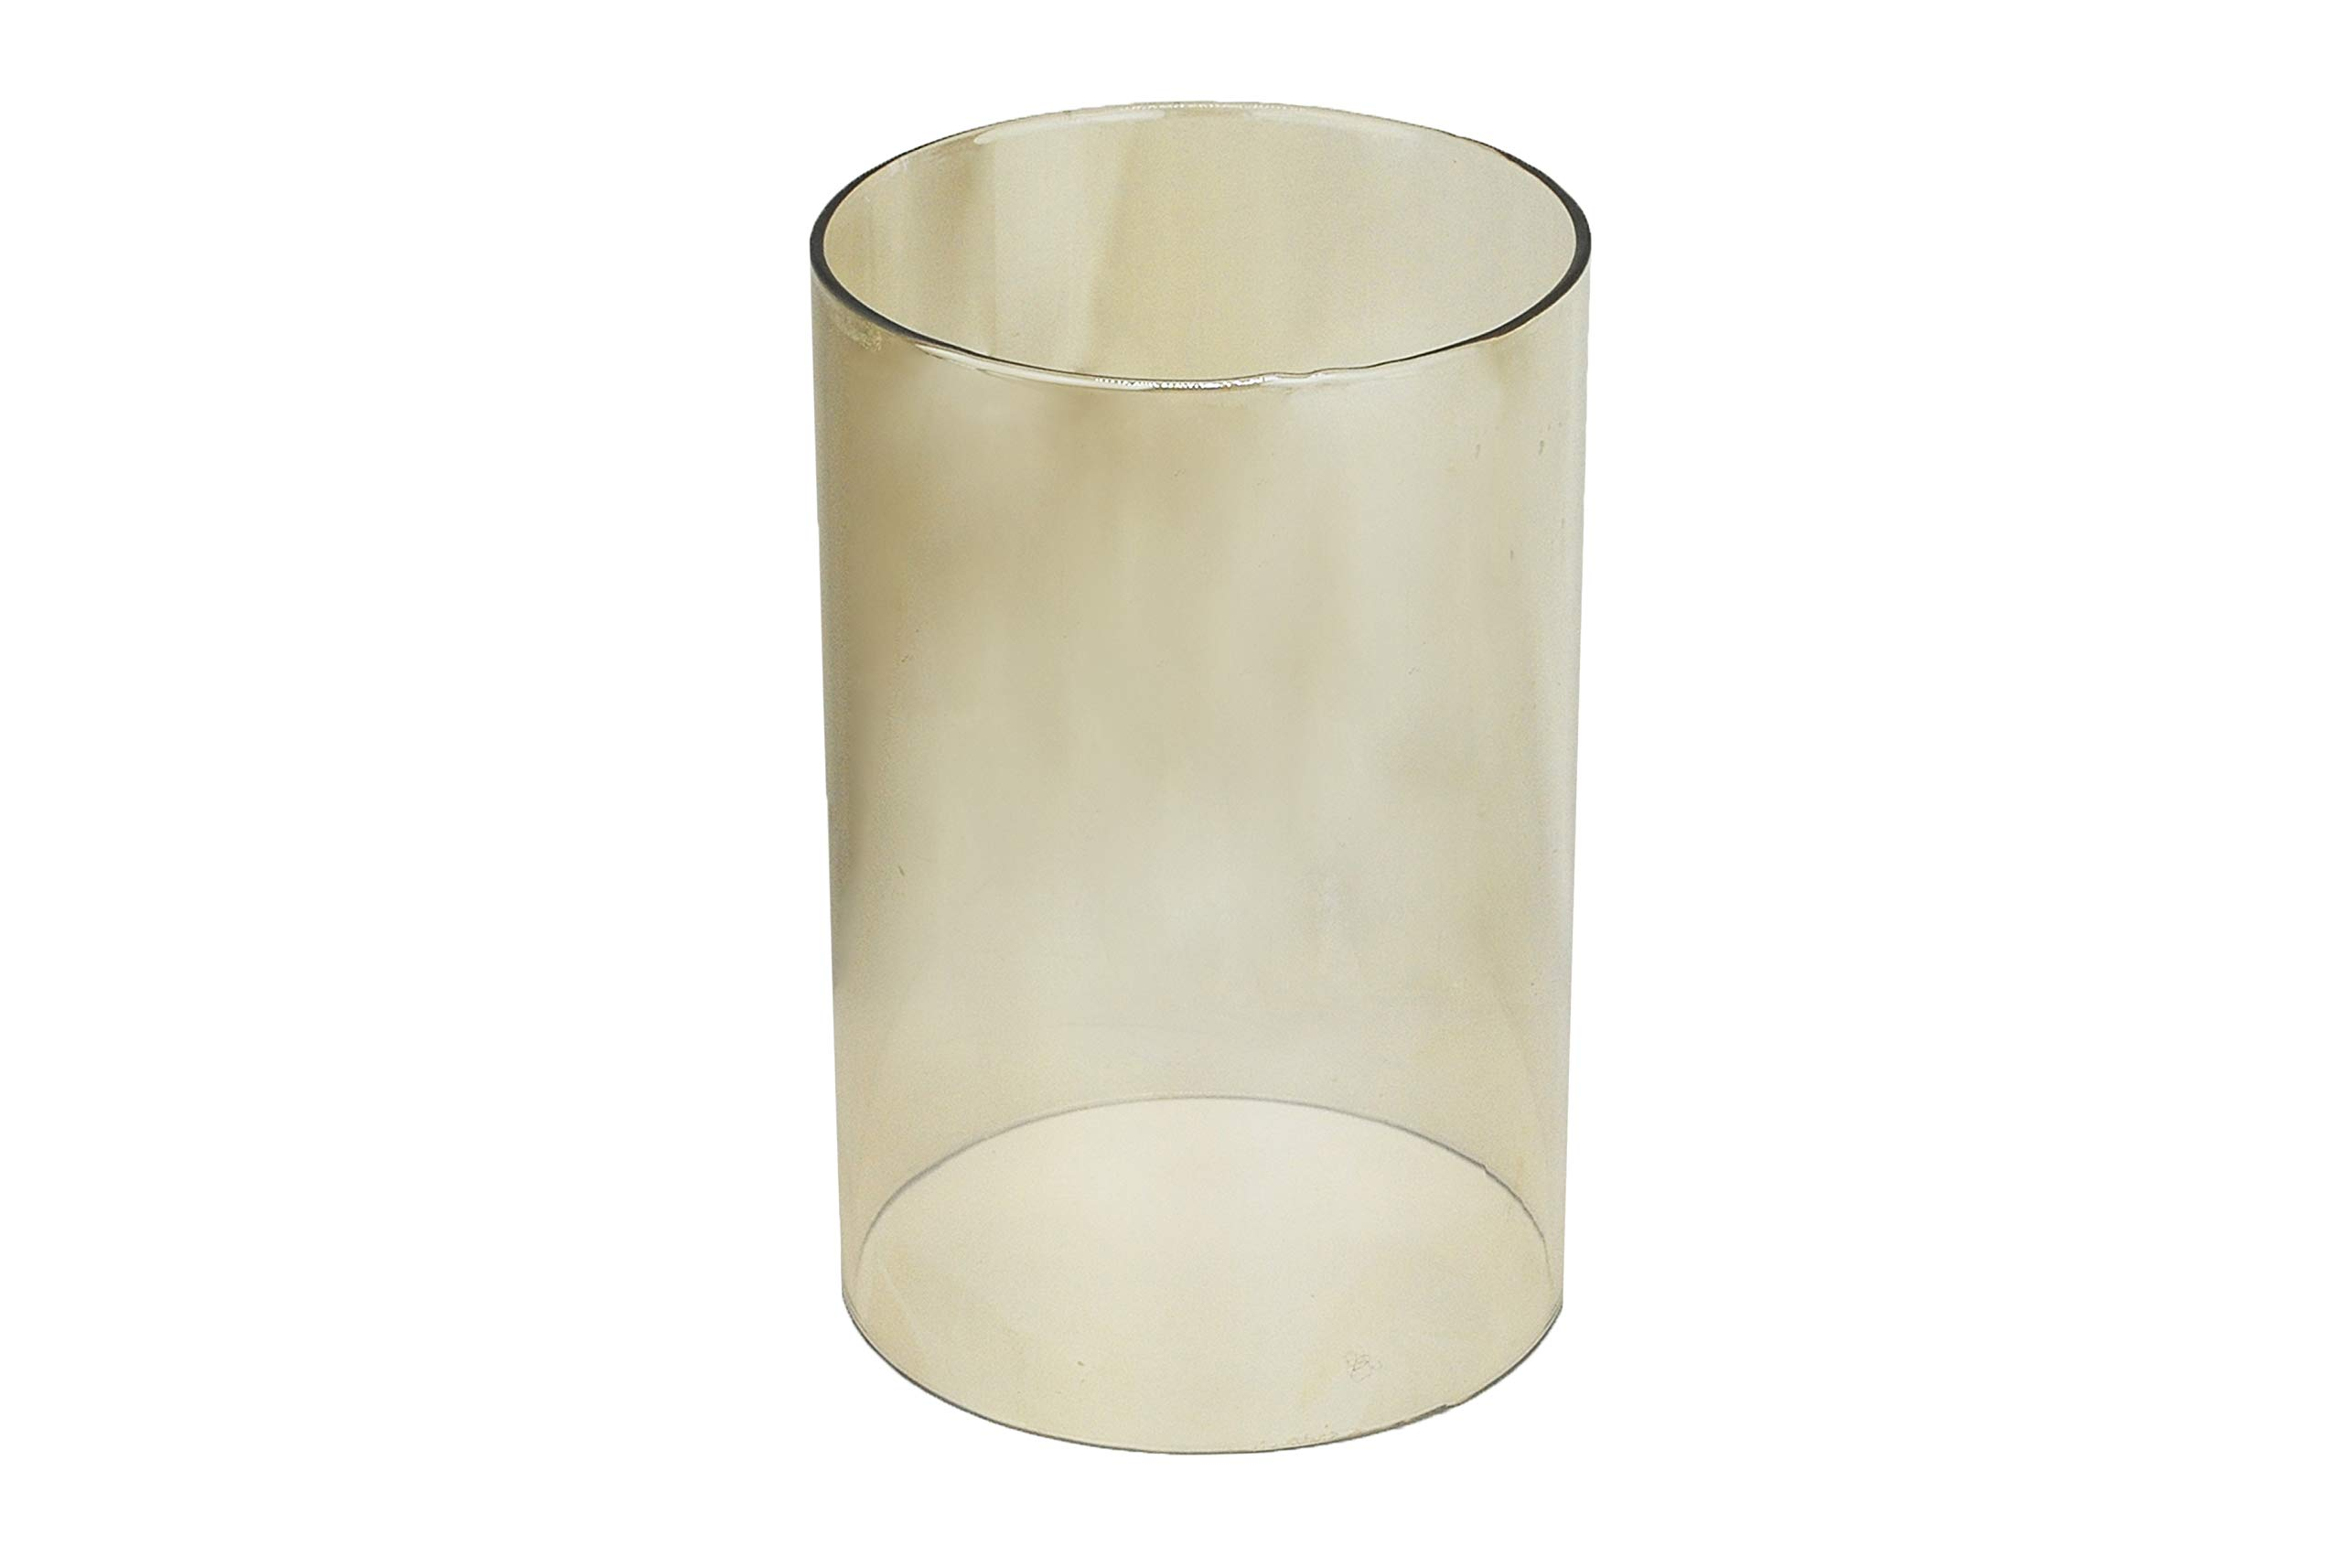 U-play Open Candle Chimney, 4 inches in Diameter, 6 inches high and Weighs 6.5 Ounces